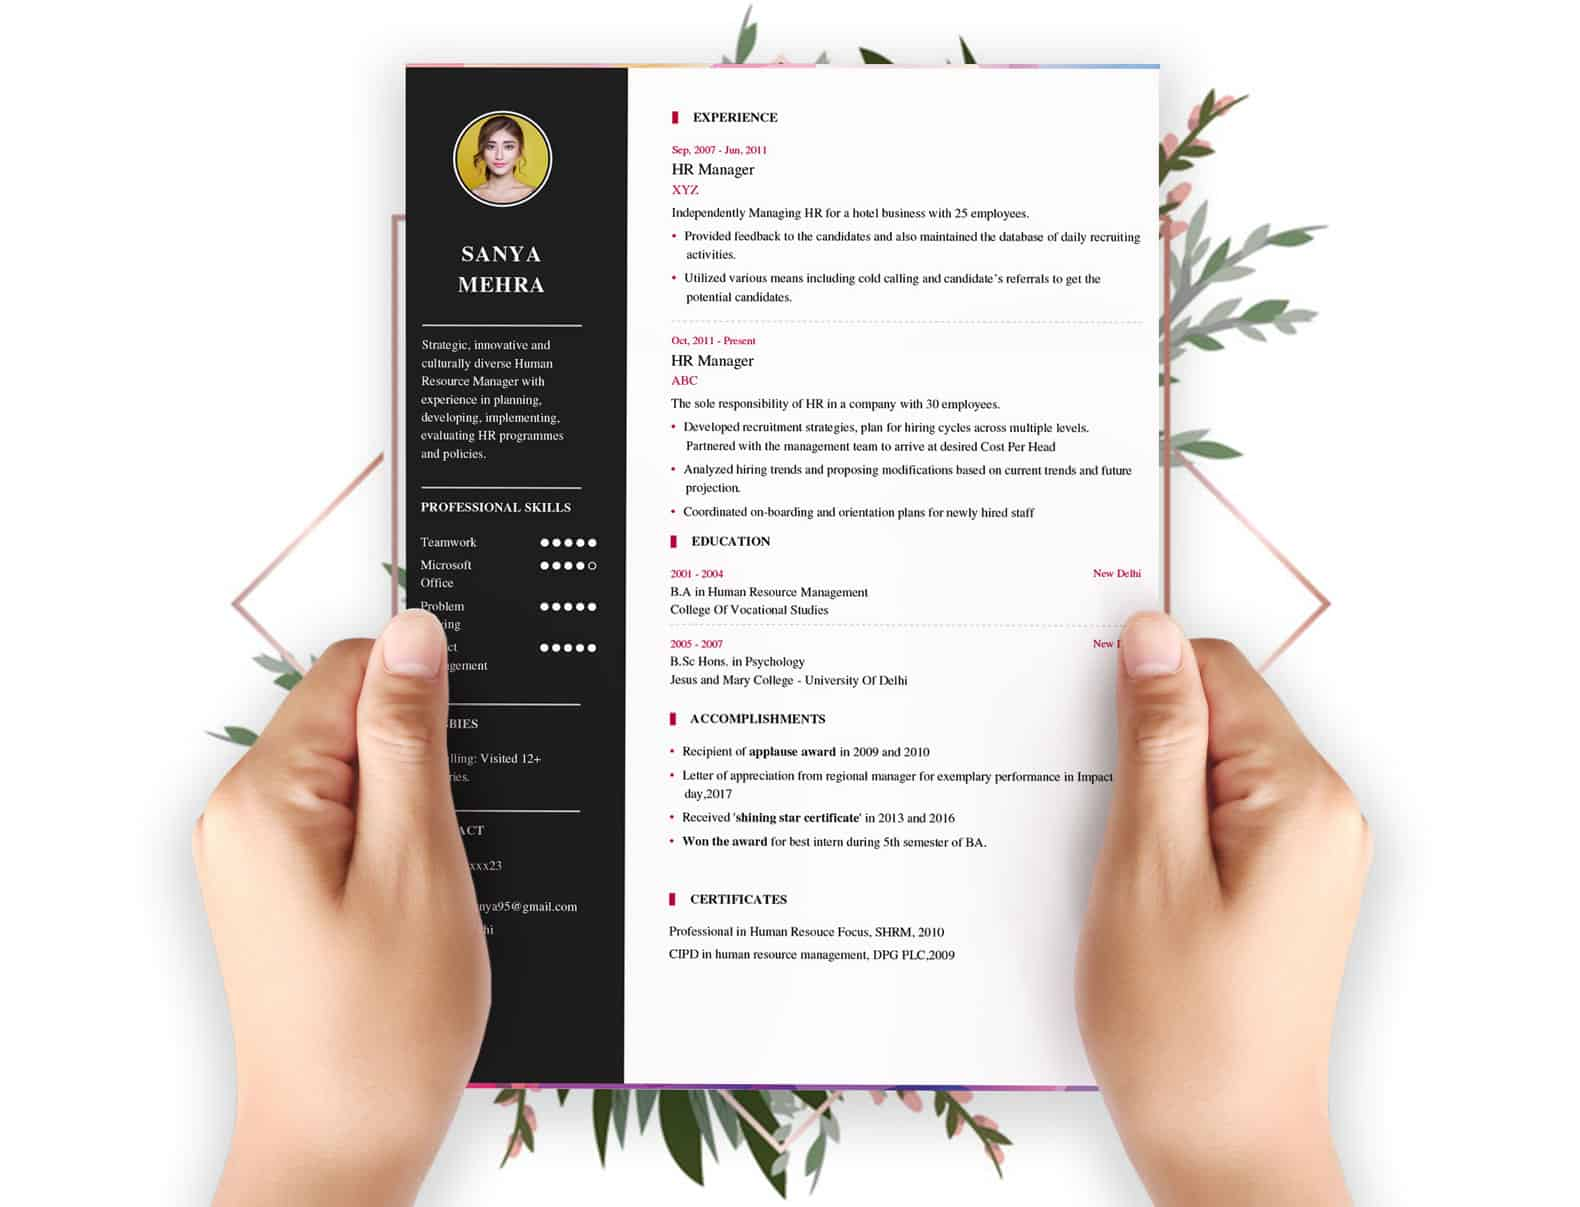 resume builder my format free and job board no cost template good titles best engineering Resume Free Resume Builder No Cost